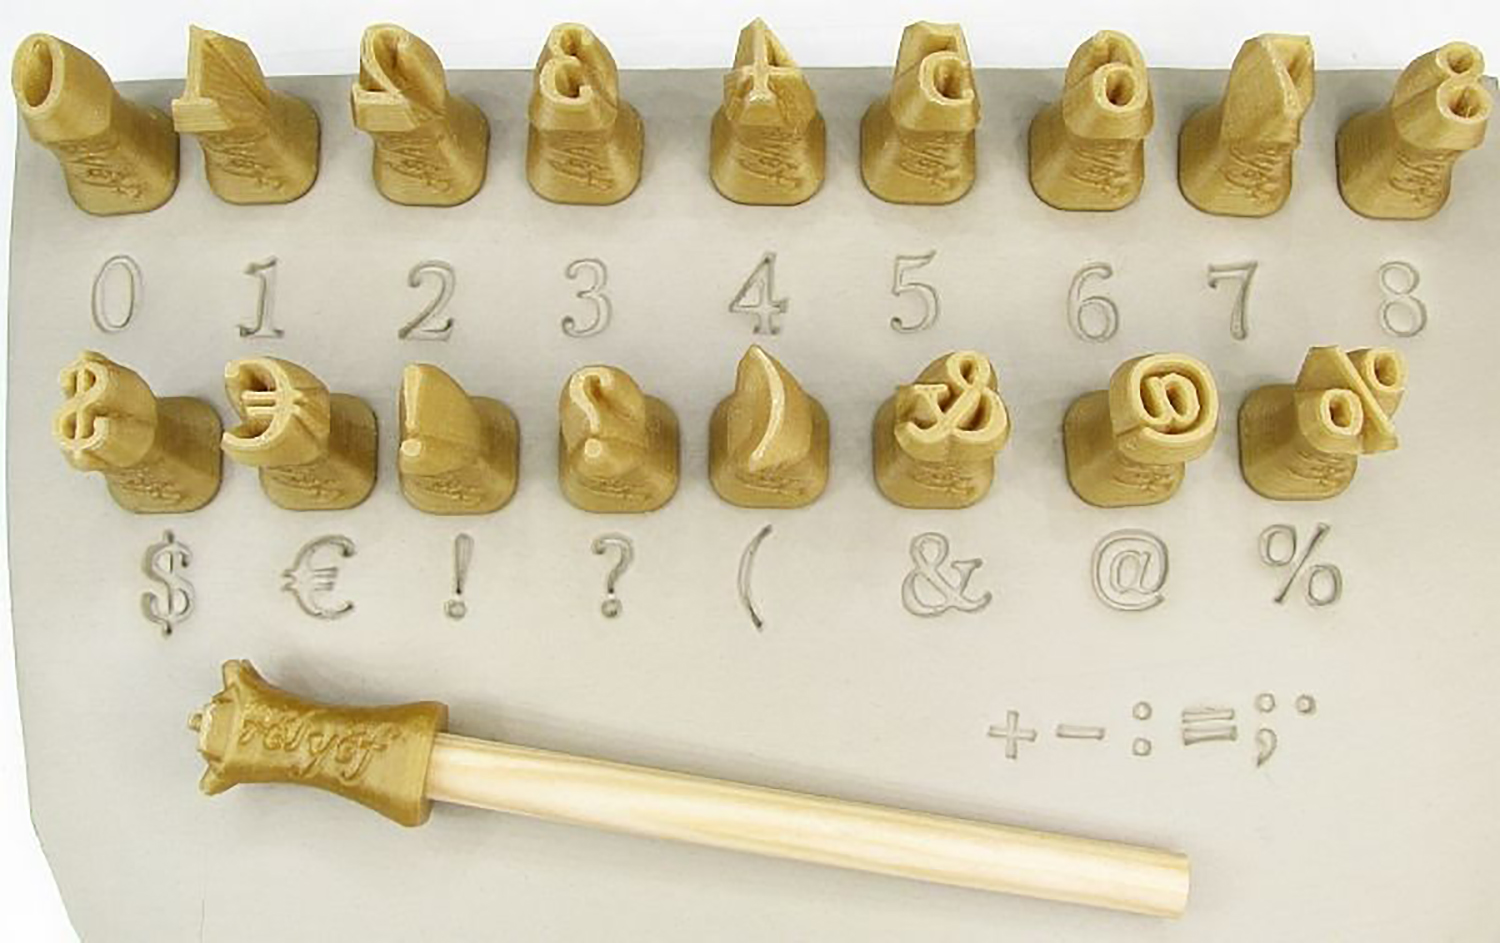 Relyef Pottery Tools Set of Marian Numerals 10mm 1